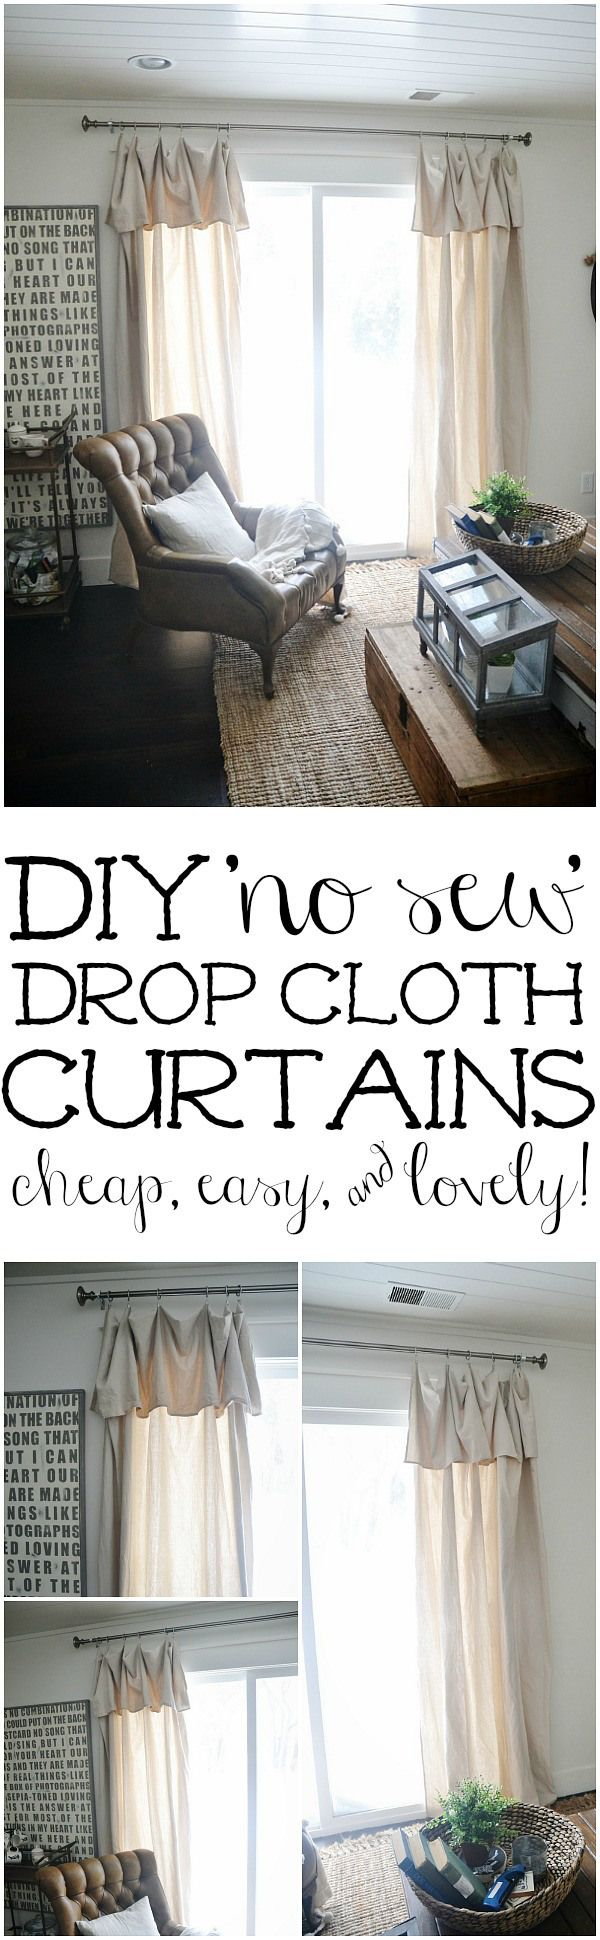 DIY No-Sew Drop Material Curtains – The Most Cost Effective & Best DIY Curtains Ever!…